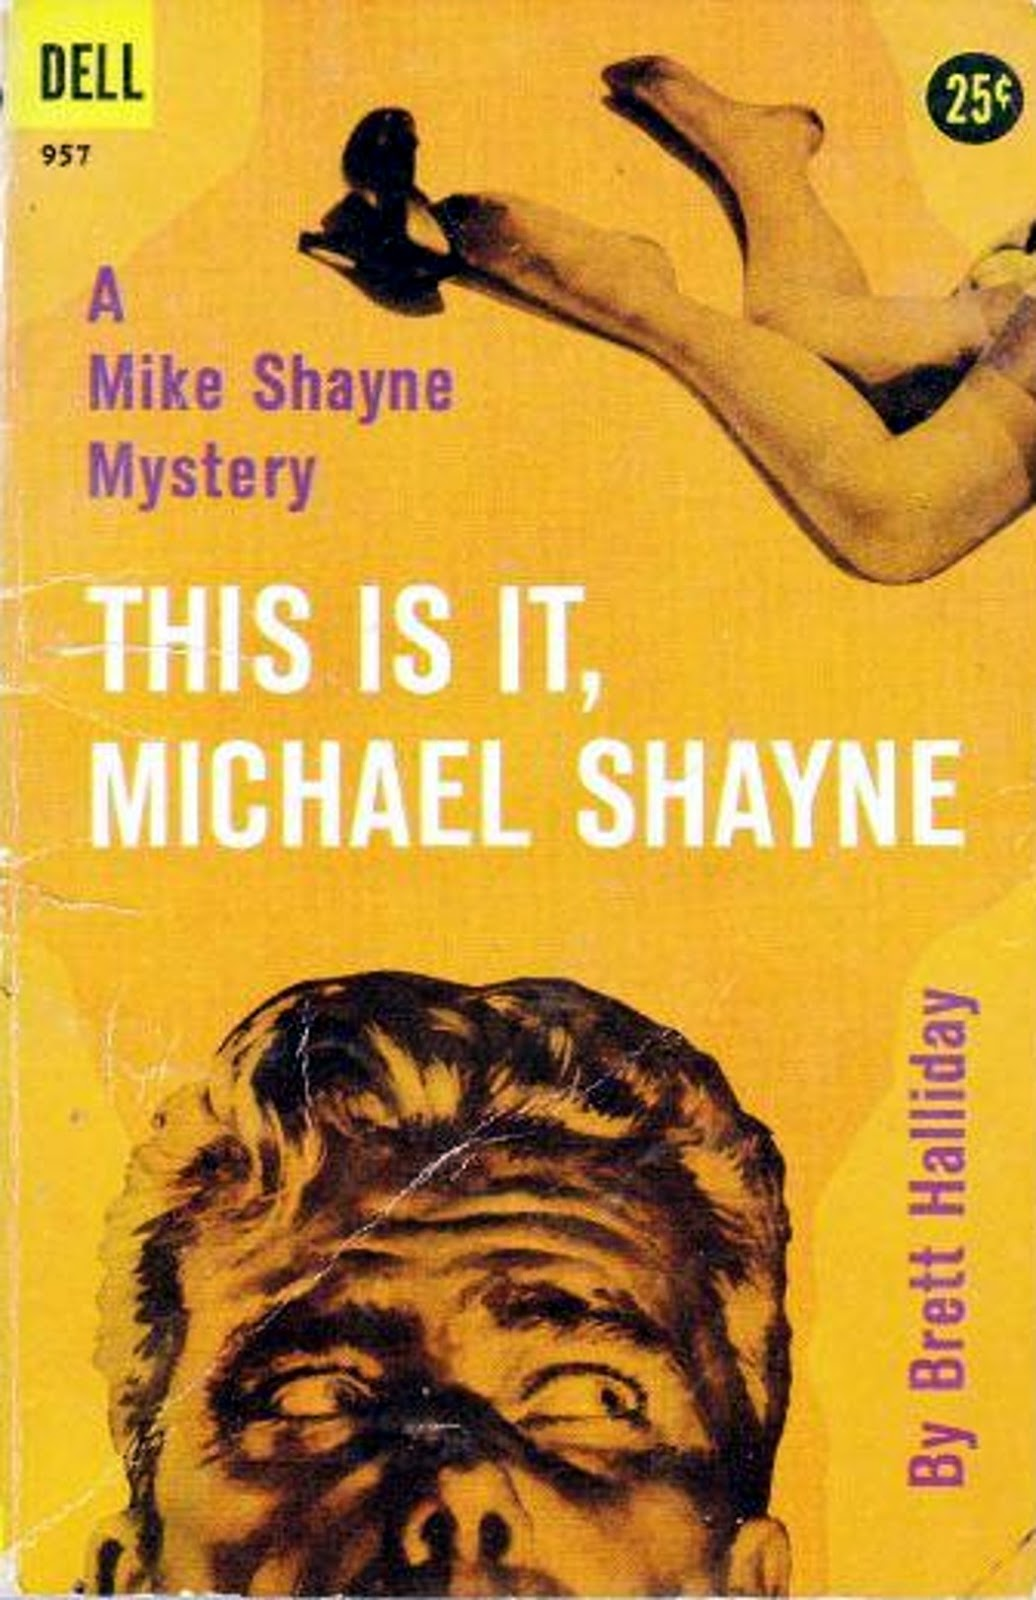 Rough edges forgotten books this is it michael shayne brett i wonder if dresser added those for the paperback edition or if some editor at dell was responsible for them it doesnt really matter of course fandeluxe Document